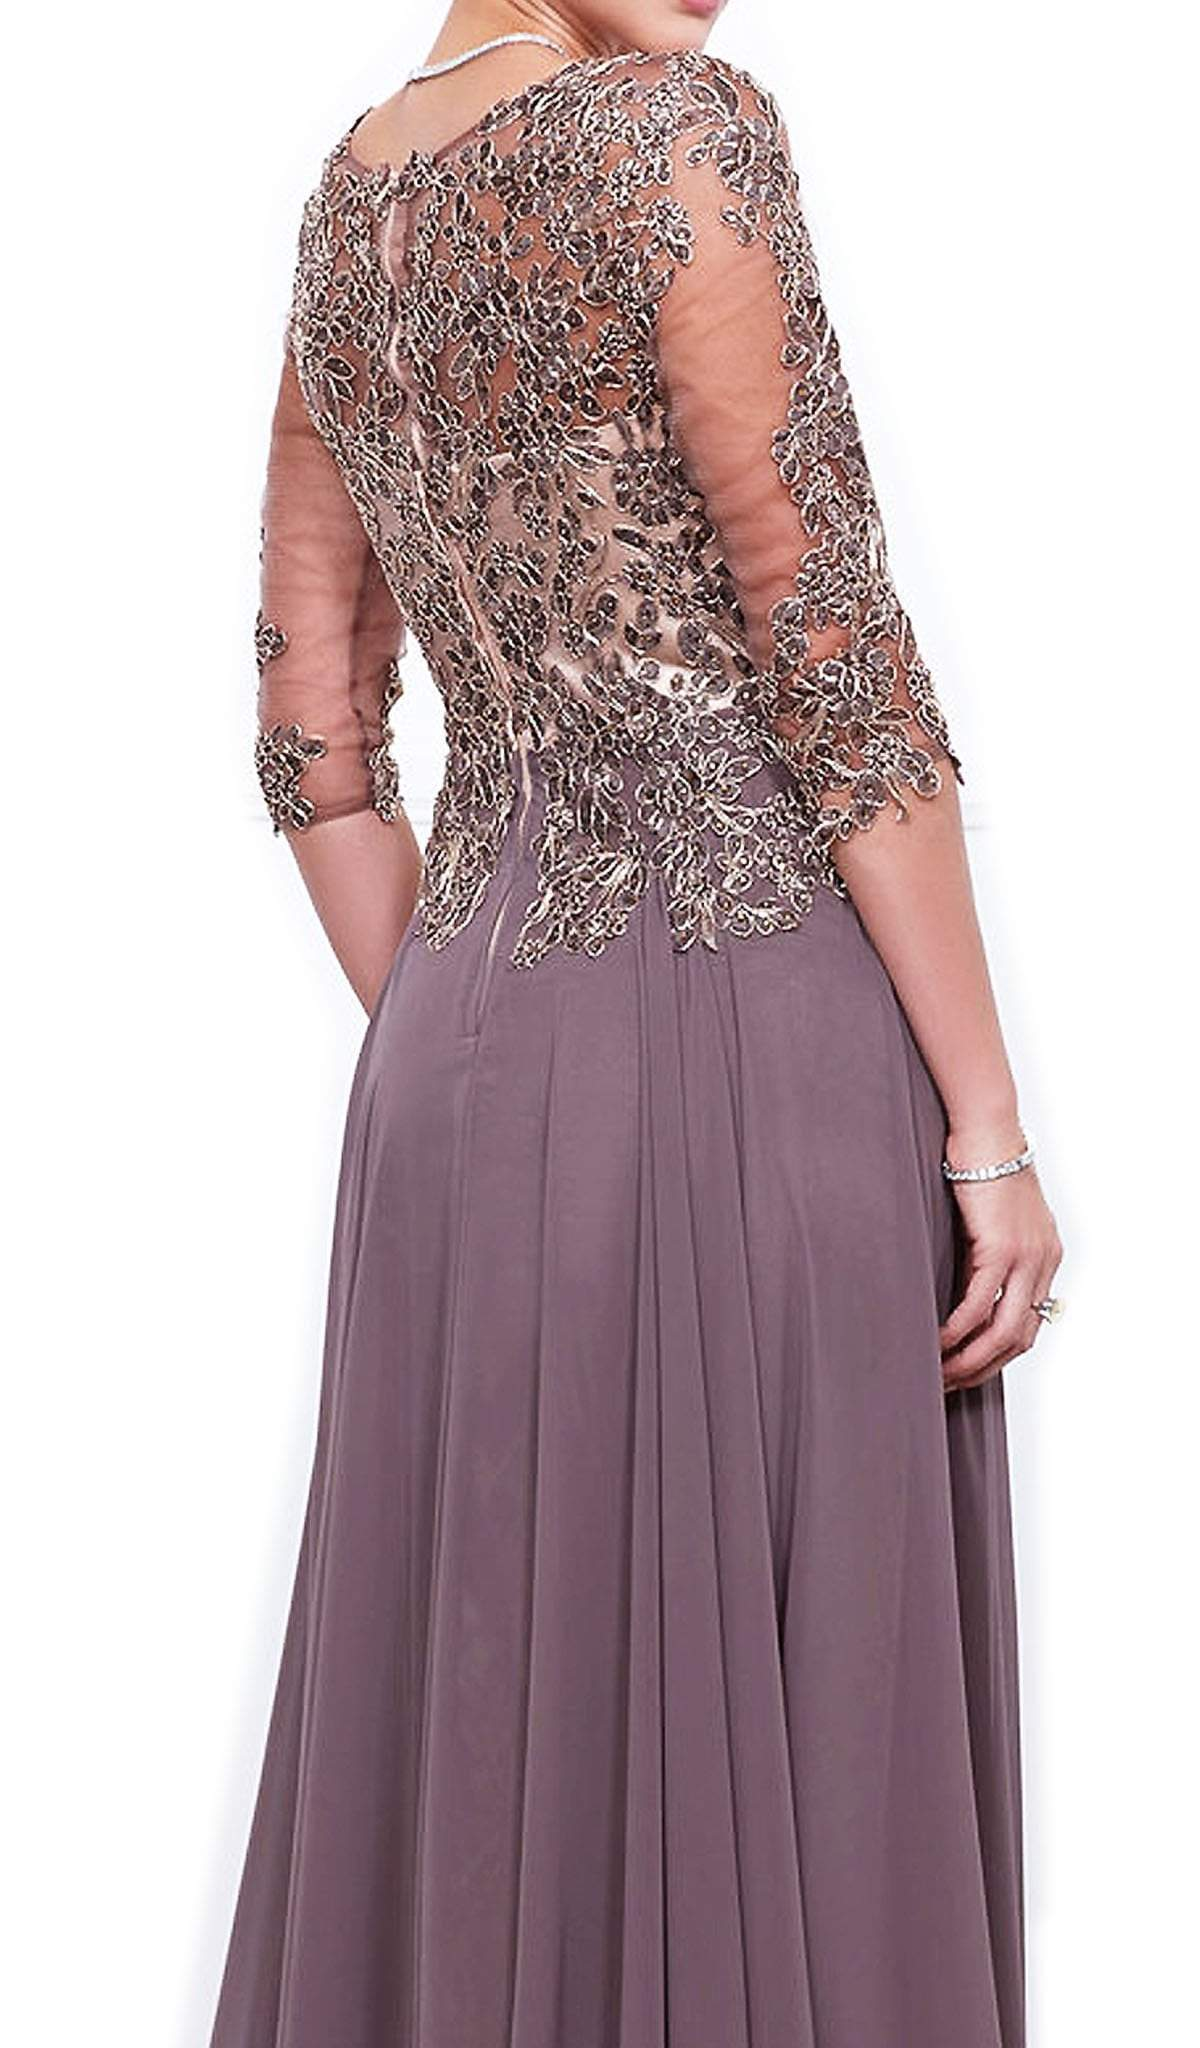 Nox Anabel - Embroidered Long A-Line Dress 5144SC